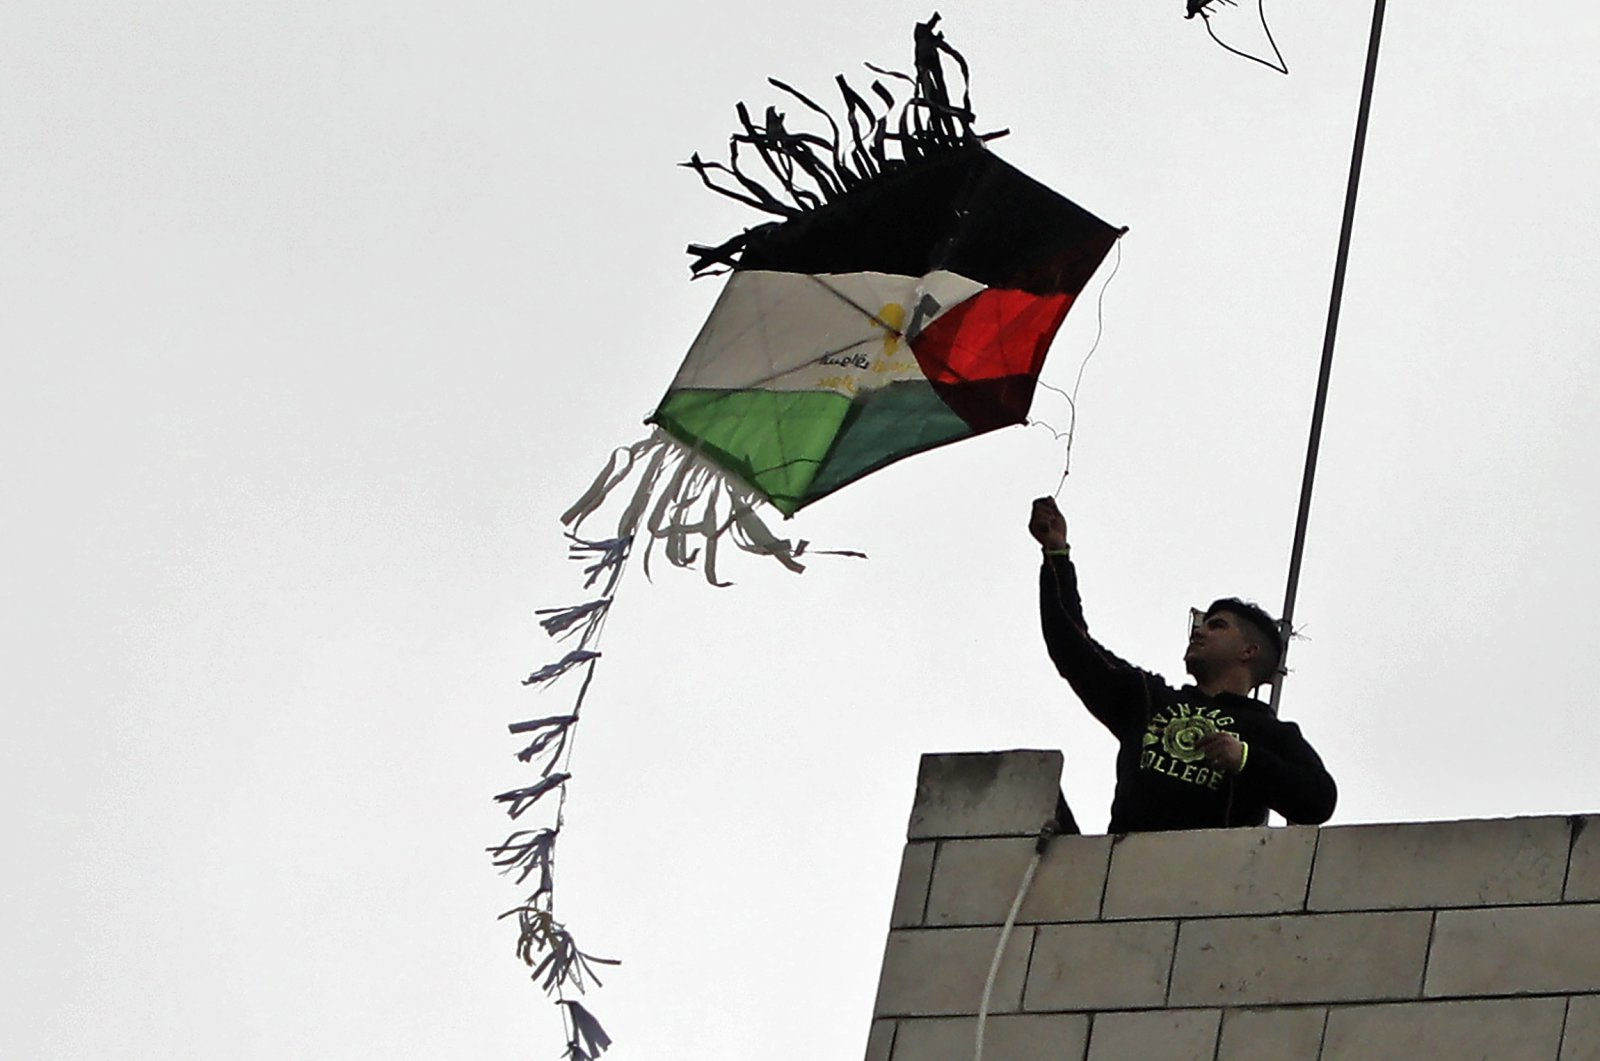 A Palestinian youth flies a kite designed as a national flag from his home during confinement due to the COVID-19 pandemic, in the West Bank city of Nablus, Palestine, April 17, 2020. (AFP Photo)